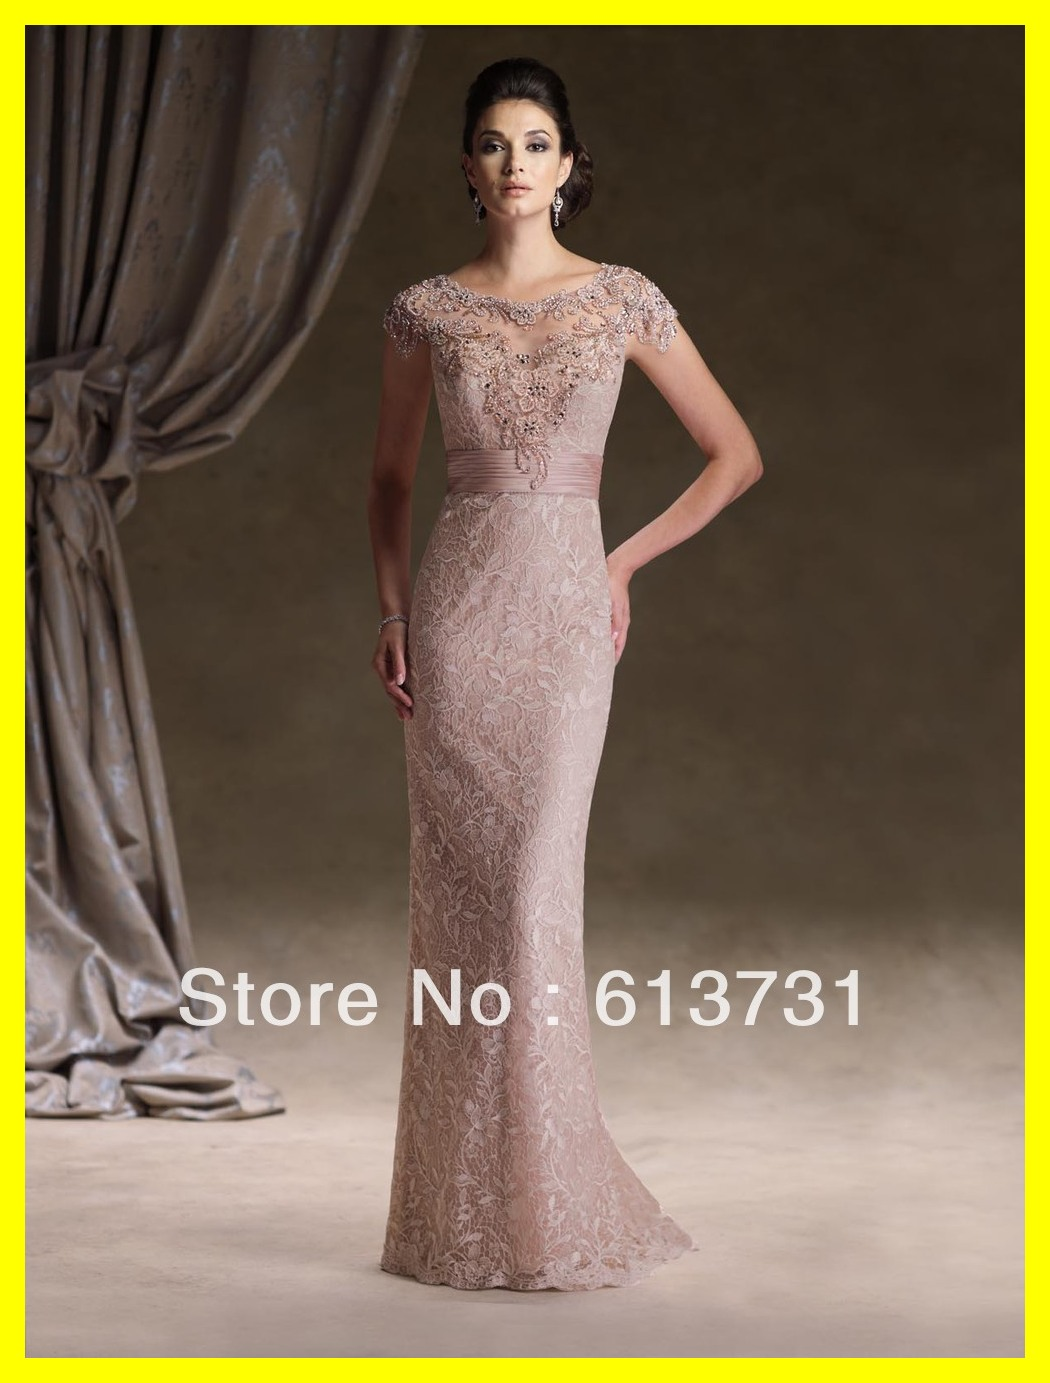 Mother of the bride dress designers dresses beach wedding for Wedding mother of the bride dresses